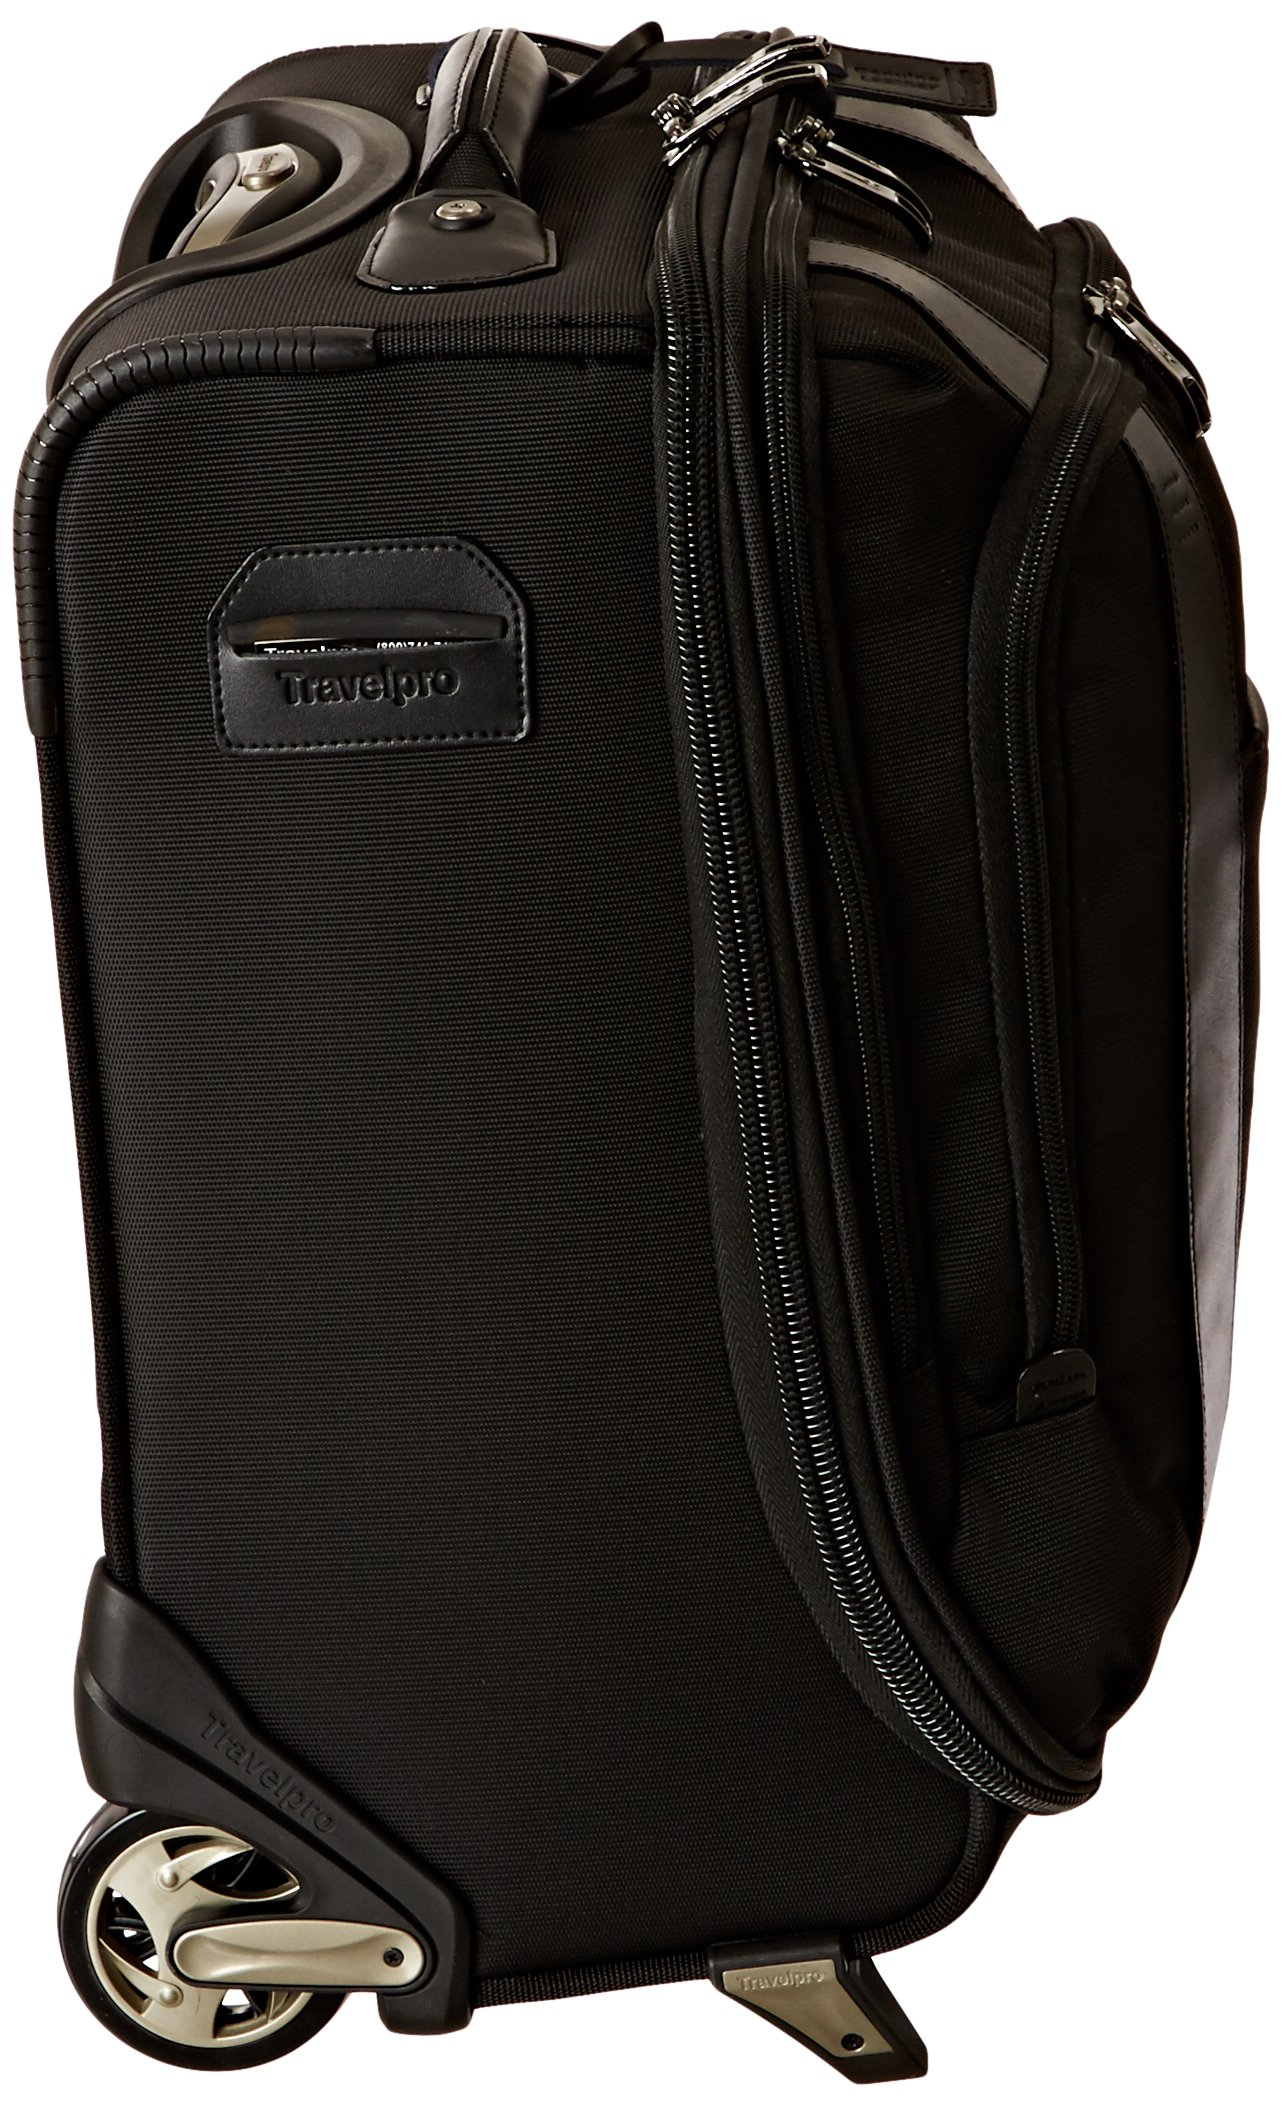 Travelpro Executive Choice Crew 16 Inch Rolling Business Brief, Black, One Size by Travelpro (Image #3)